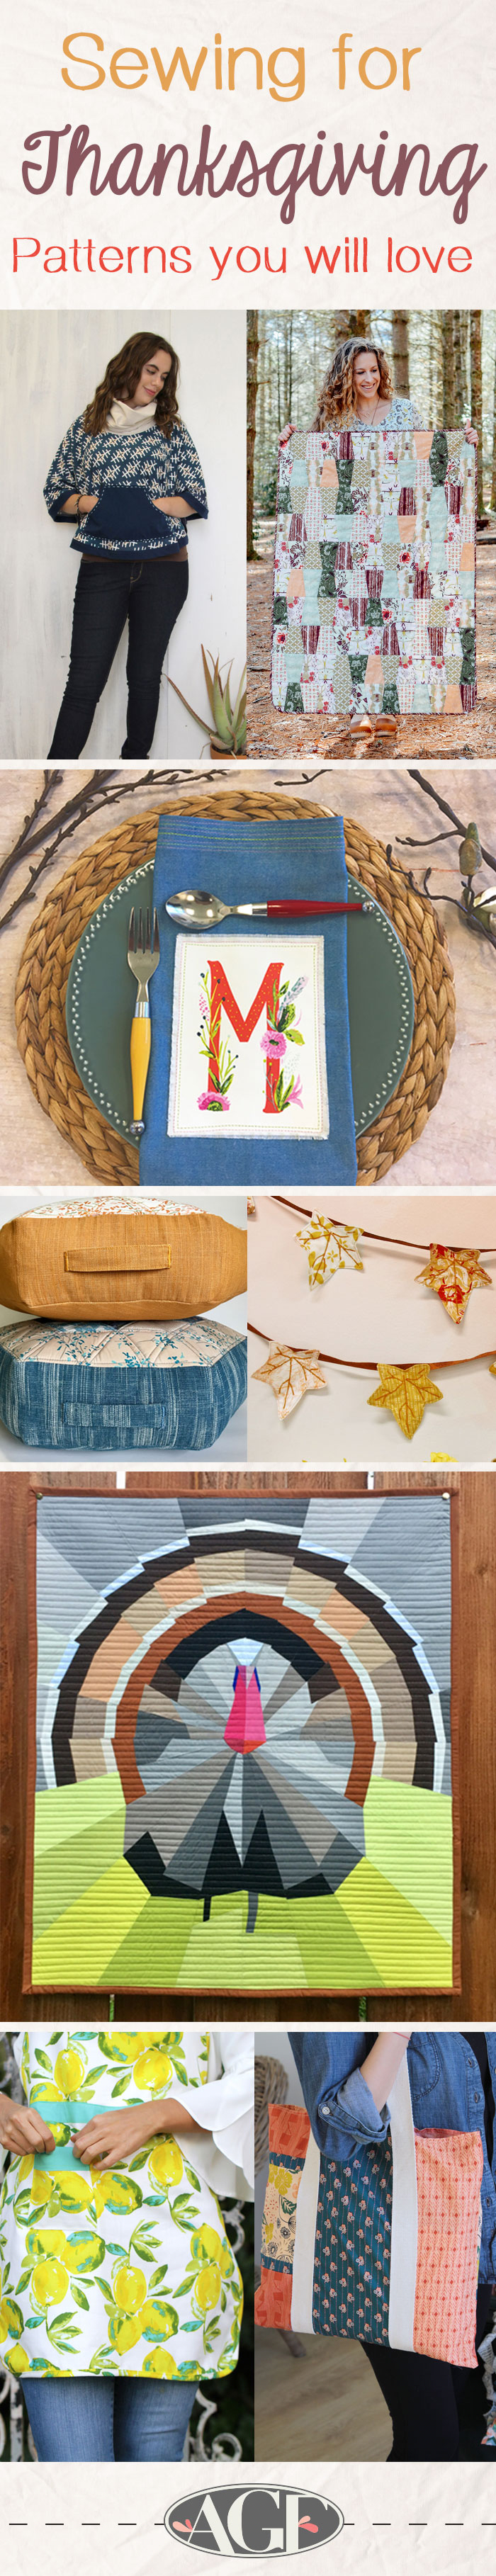 Pinterest-Thankgiving-Sewing-Patterns